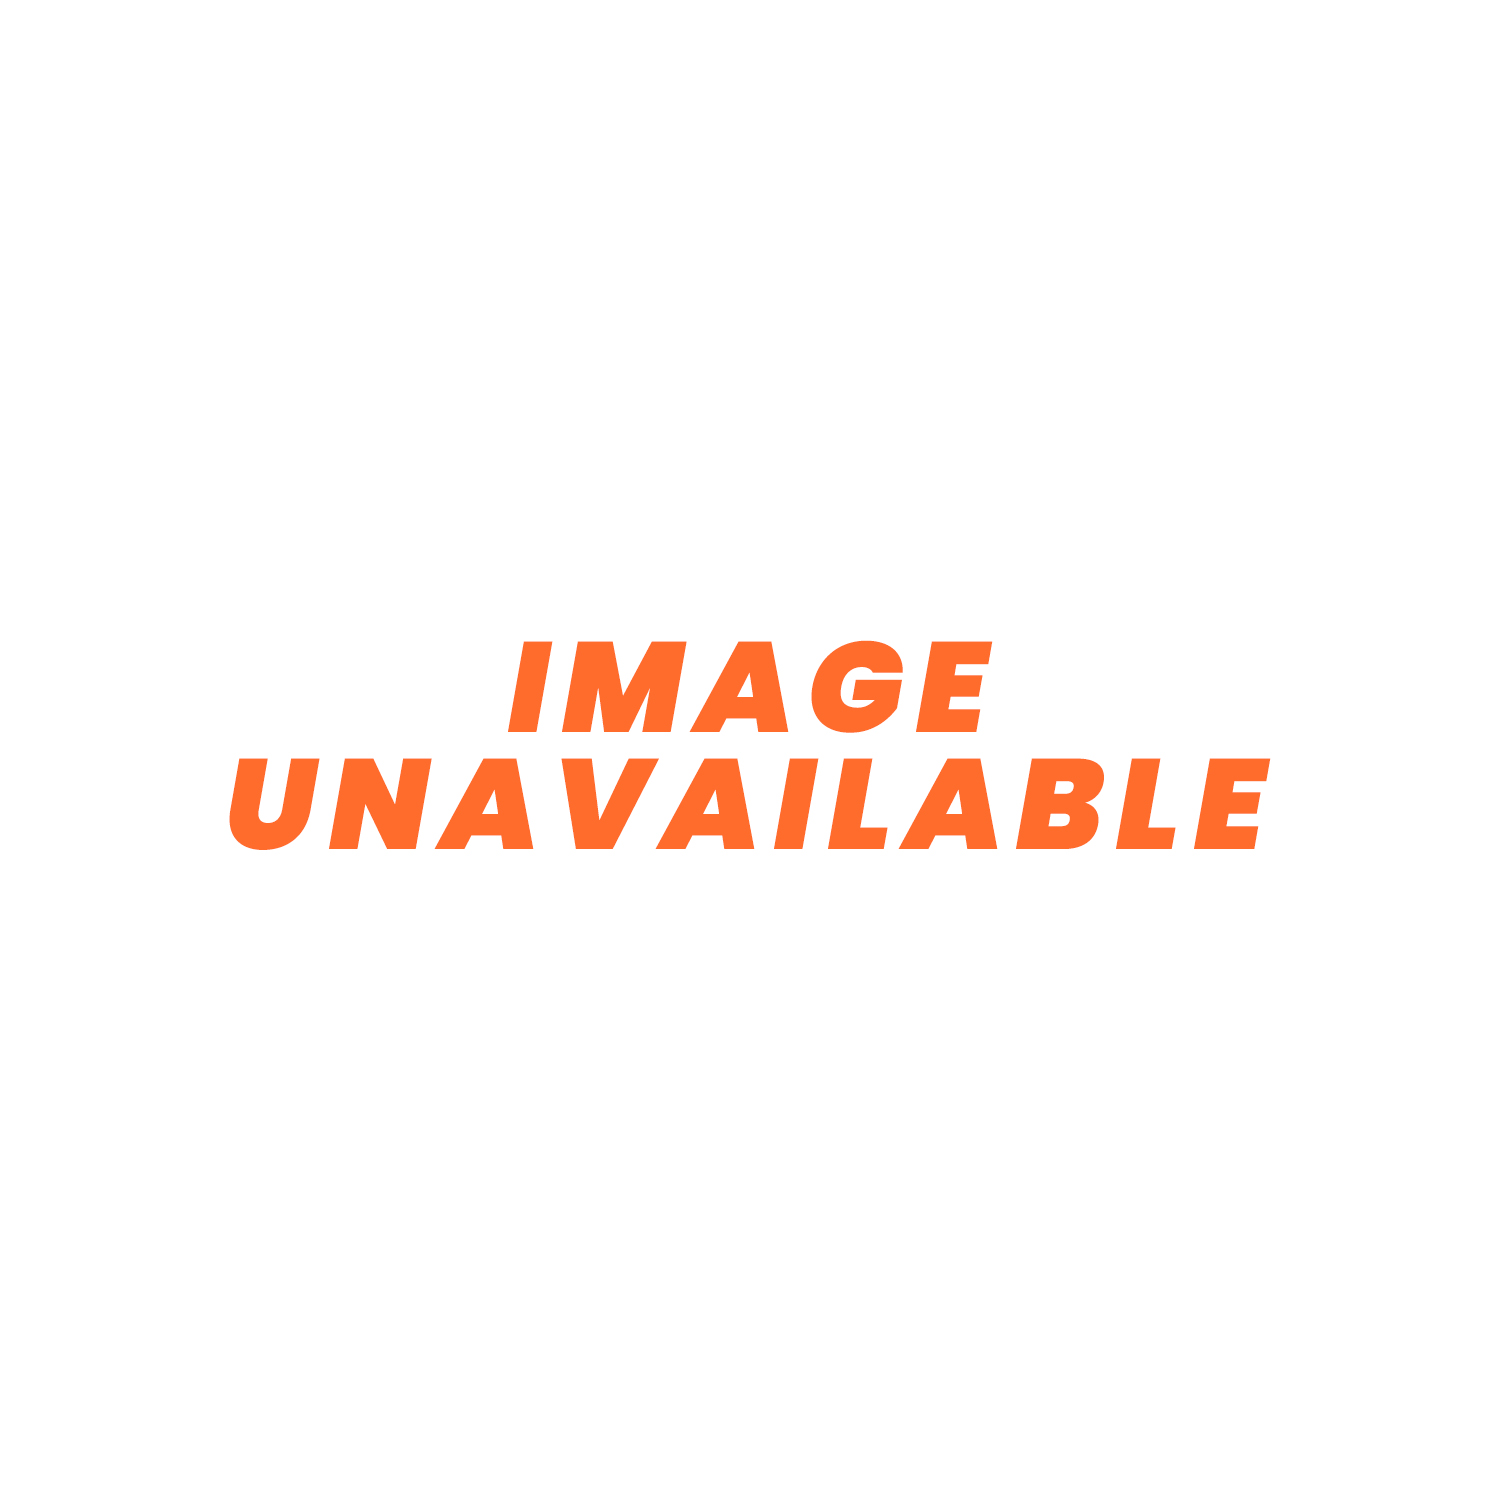 "SPAL Radiator Fan - 4.5"" (115mm) Pull VA69A-A101-87A 236cfm"